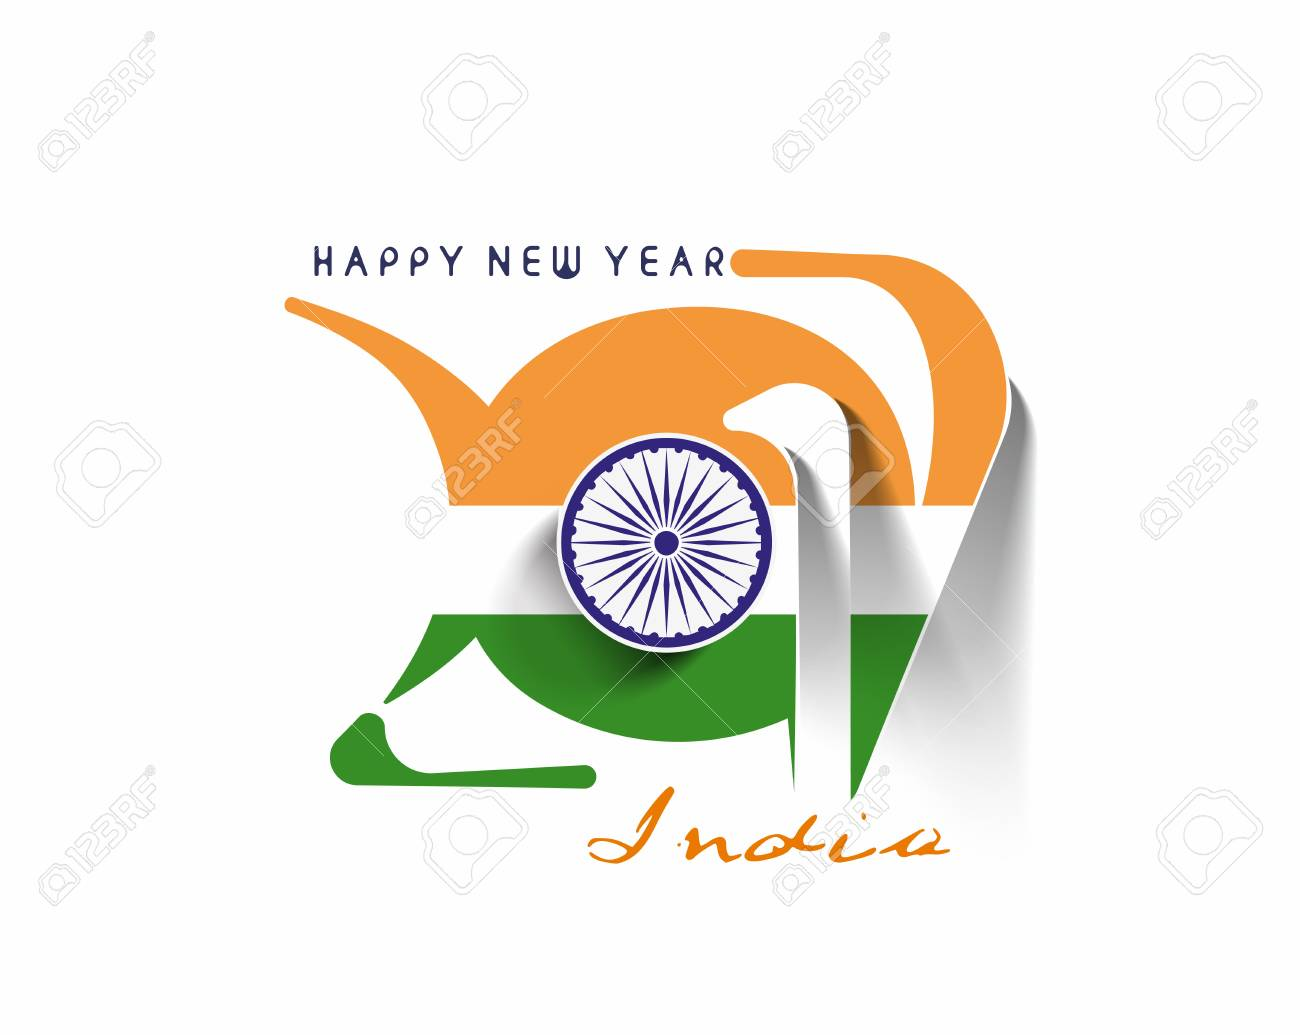 happy new year 2017 with india flag pattern text vector design background stock vector 66810502